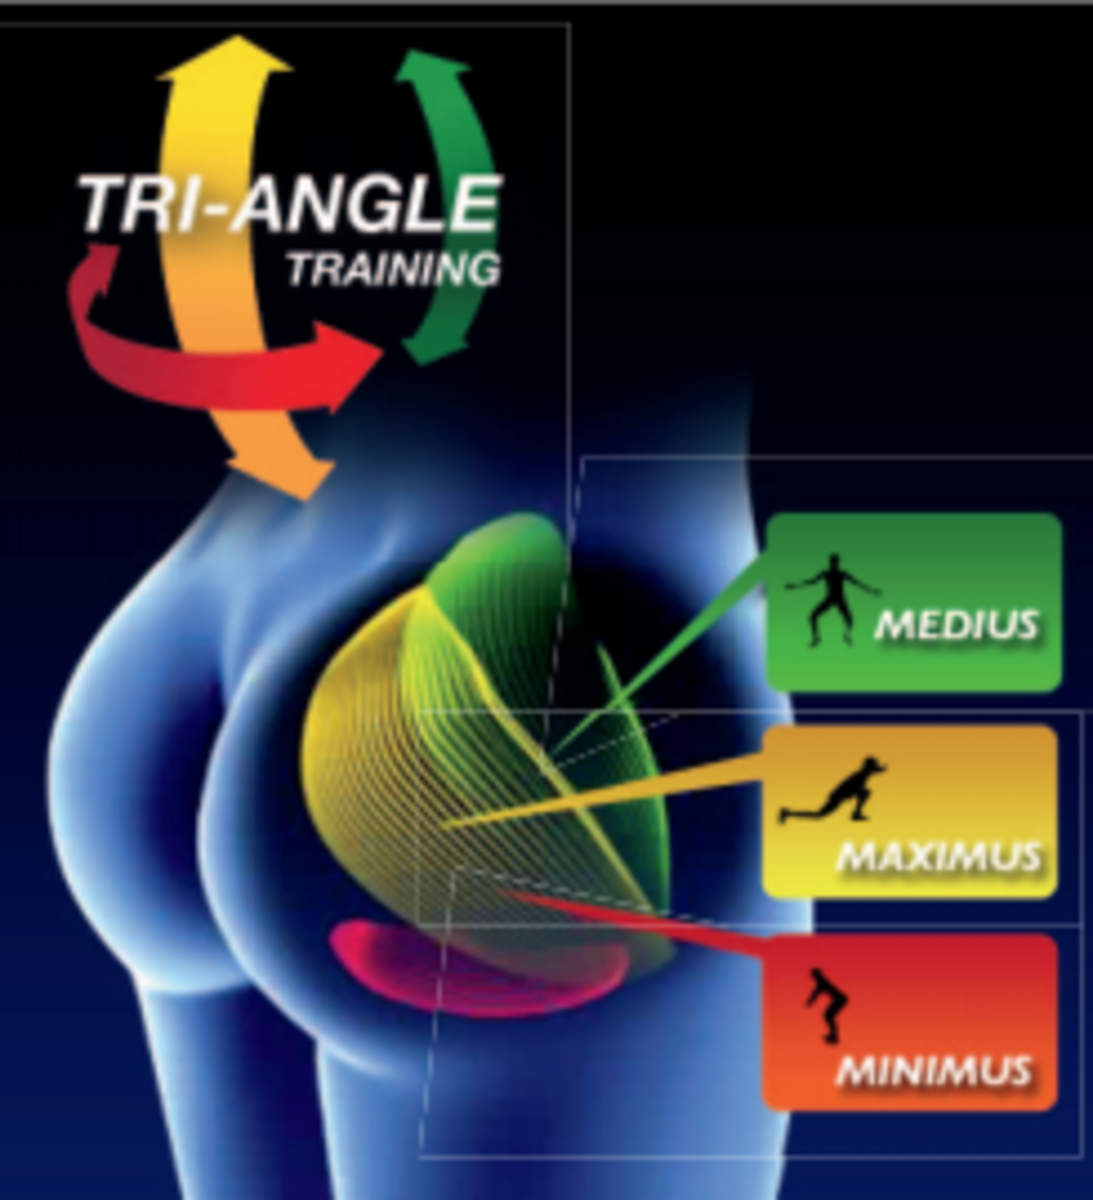 Diagram of Gluteus muscles